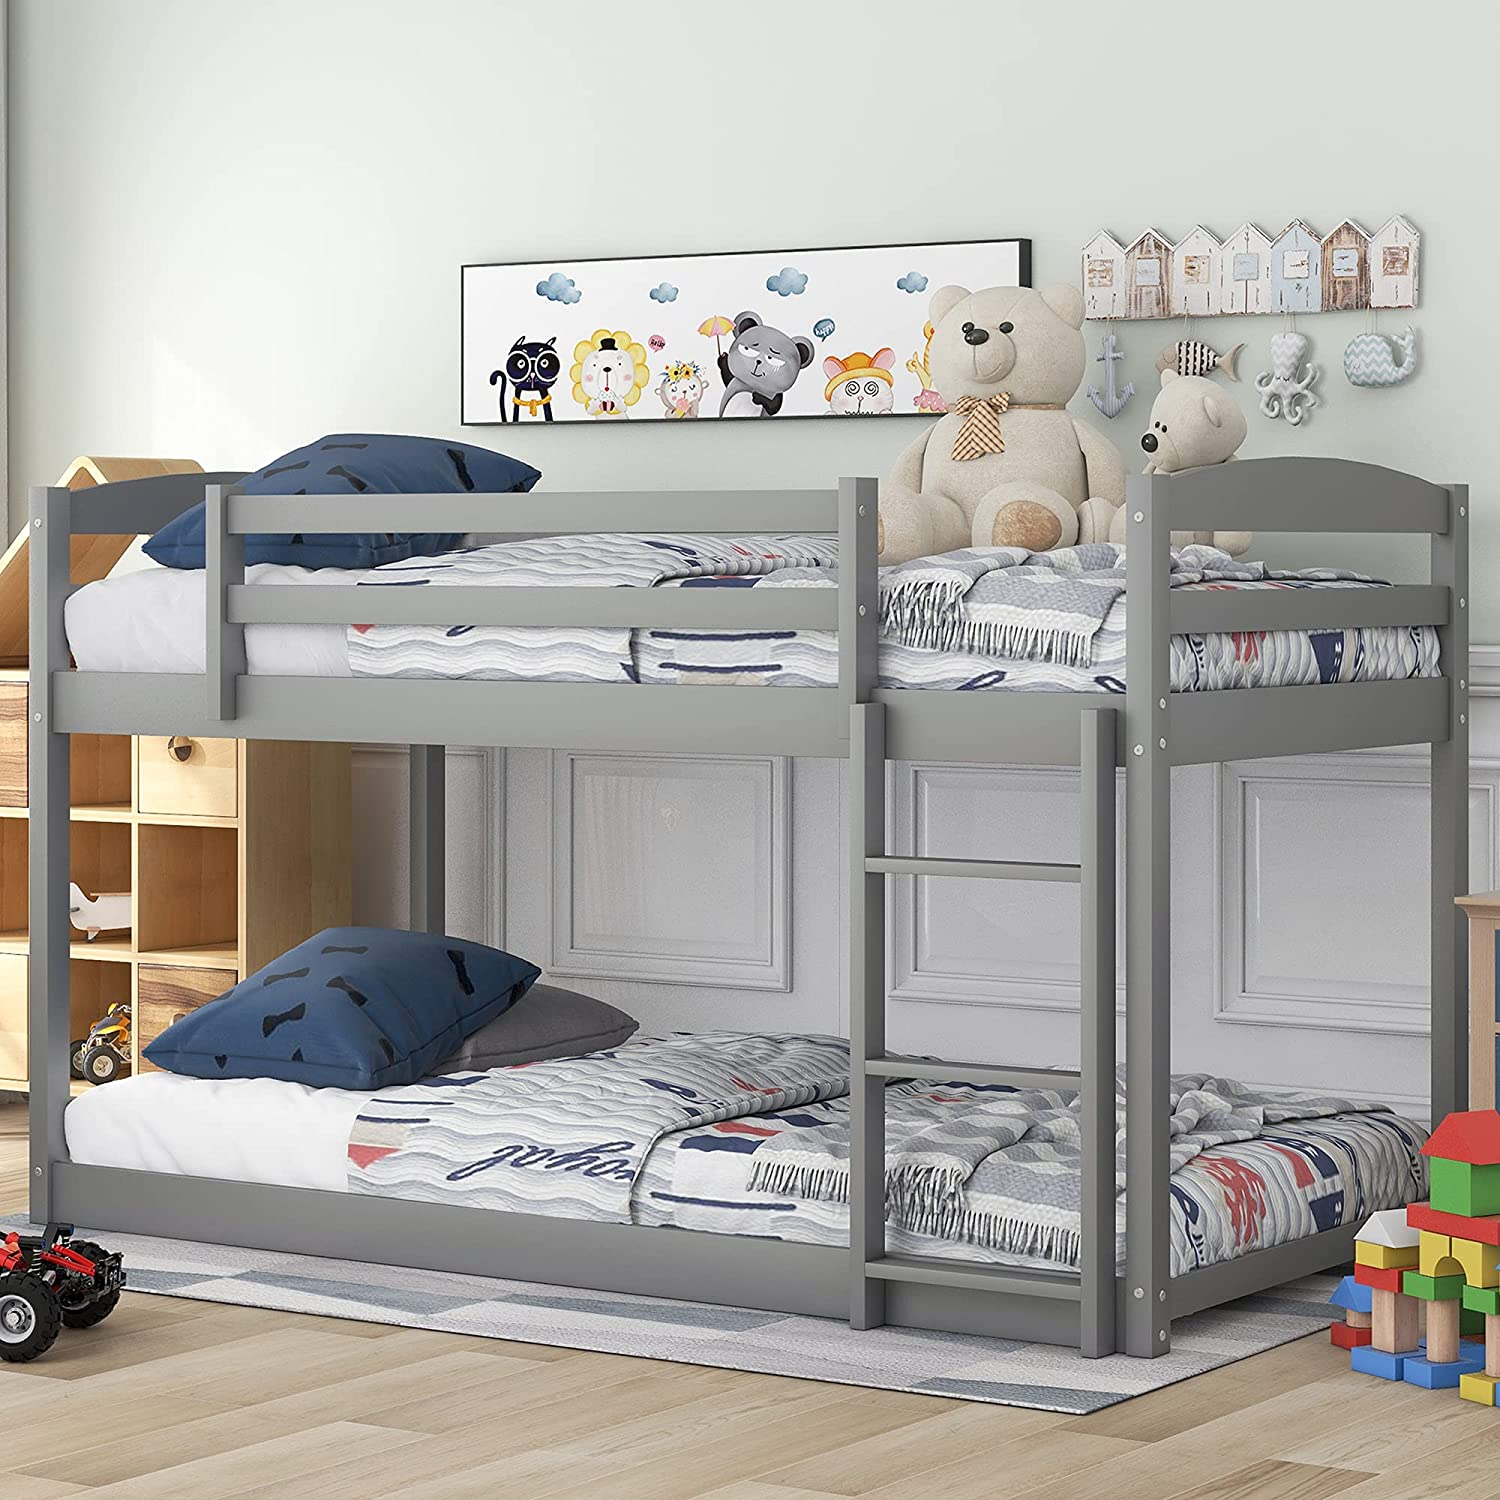 P Price reduction PURLOVE Twin Credence Over Bunk Bed Low Floor Fr Wood